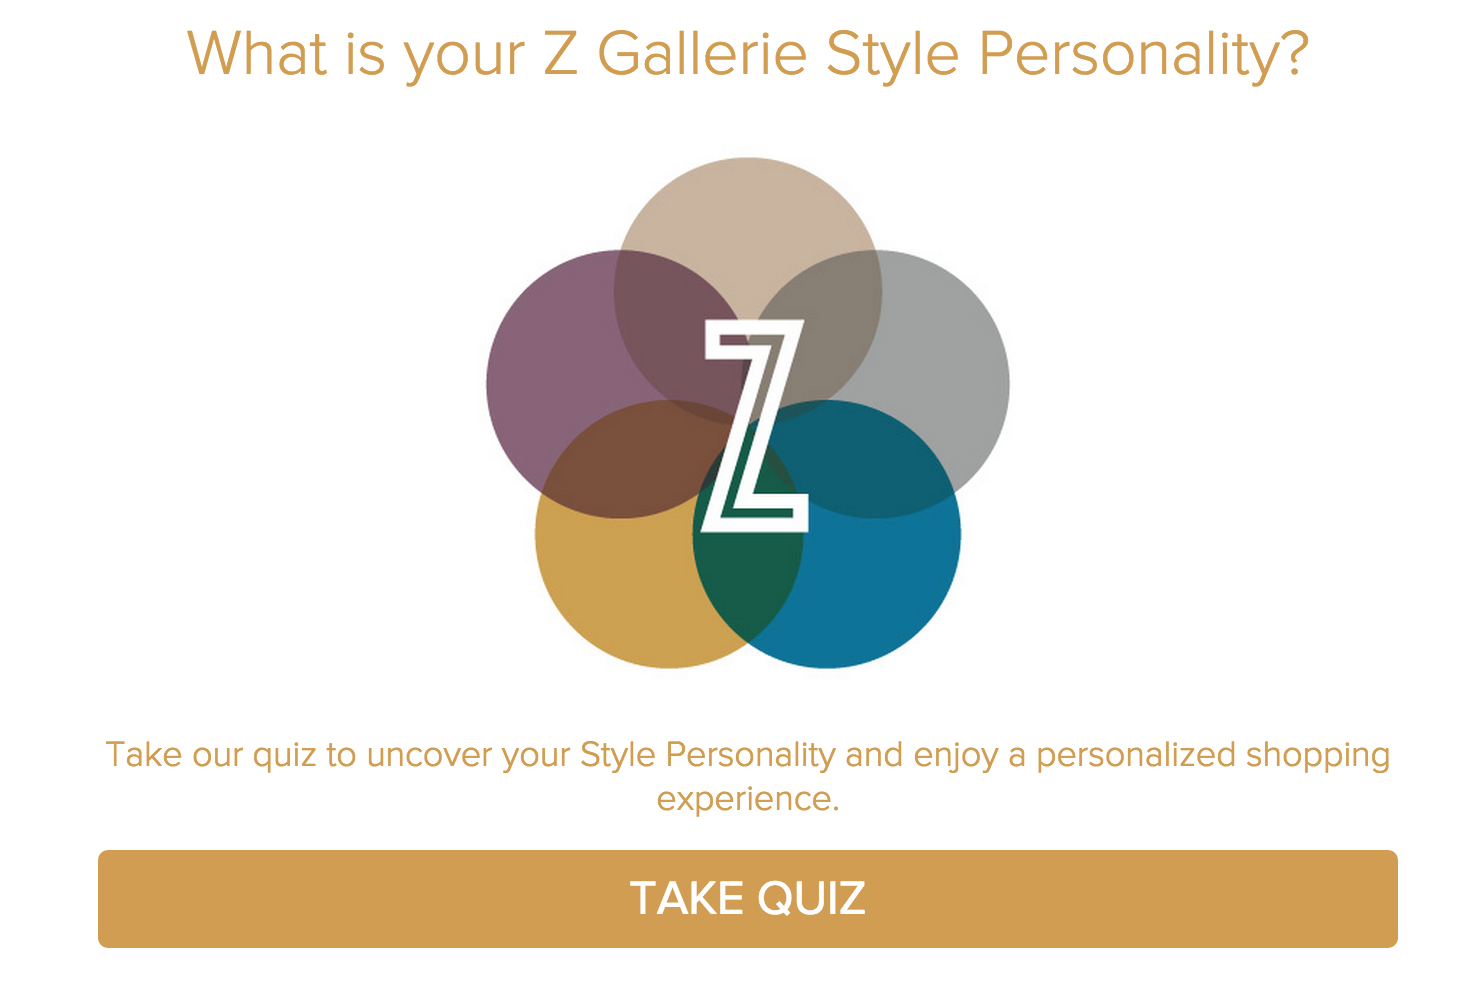 Quizzes -  Up With For Retail Quizzes It S Either Which Product Are You Or What S Your Blank Style Depending On Which Of The Categories You Chose In The